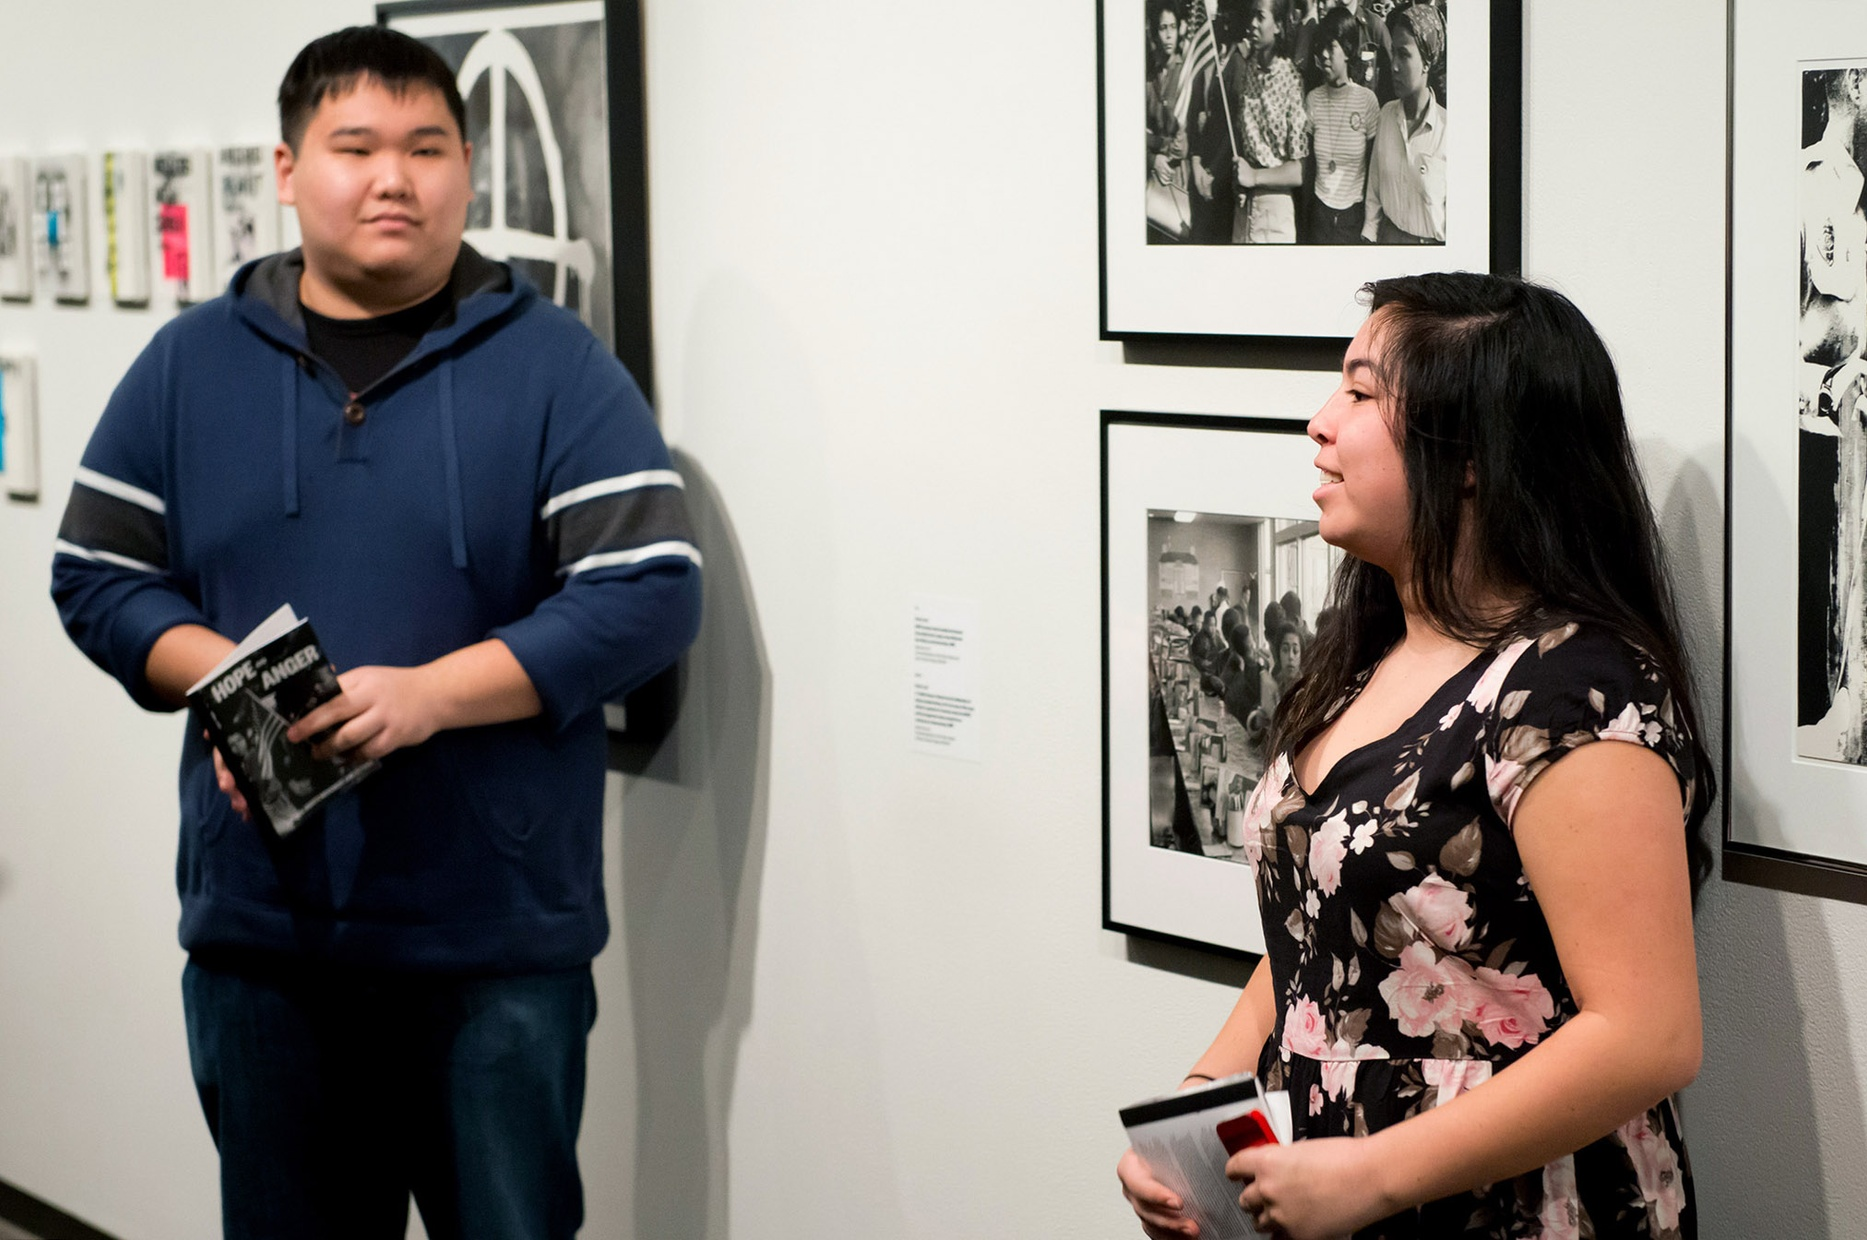 Two light-skinned, young people, one male and one female, stand in front of a wall with black and white photographs.